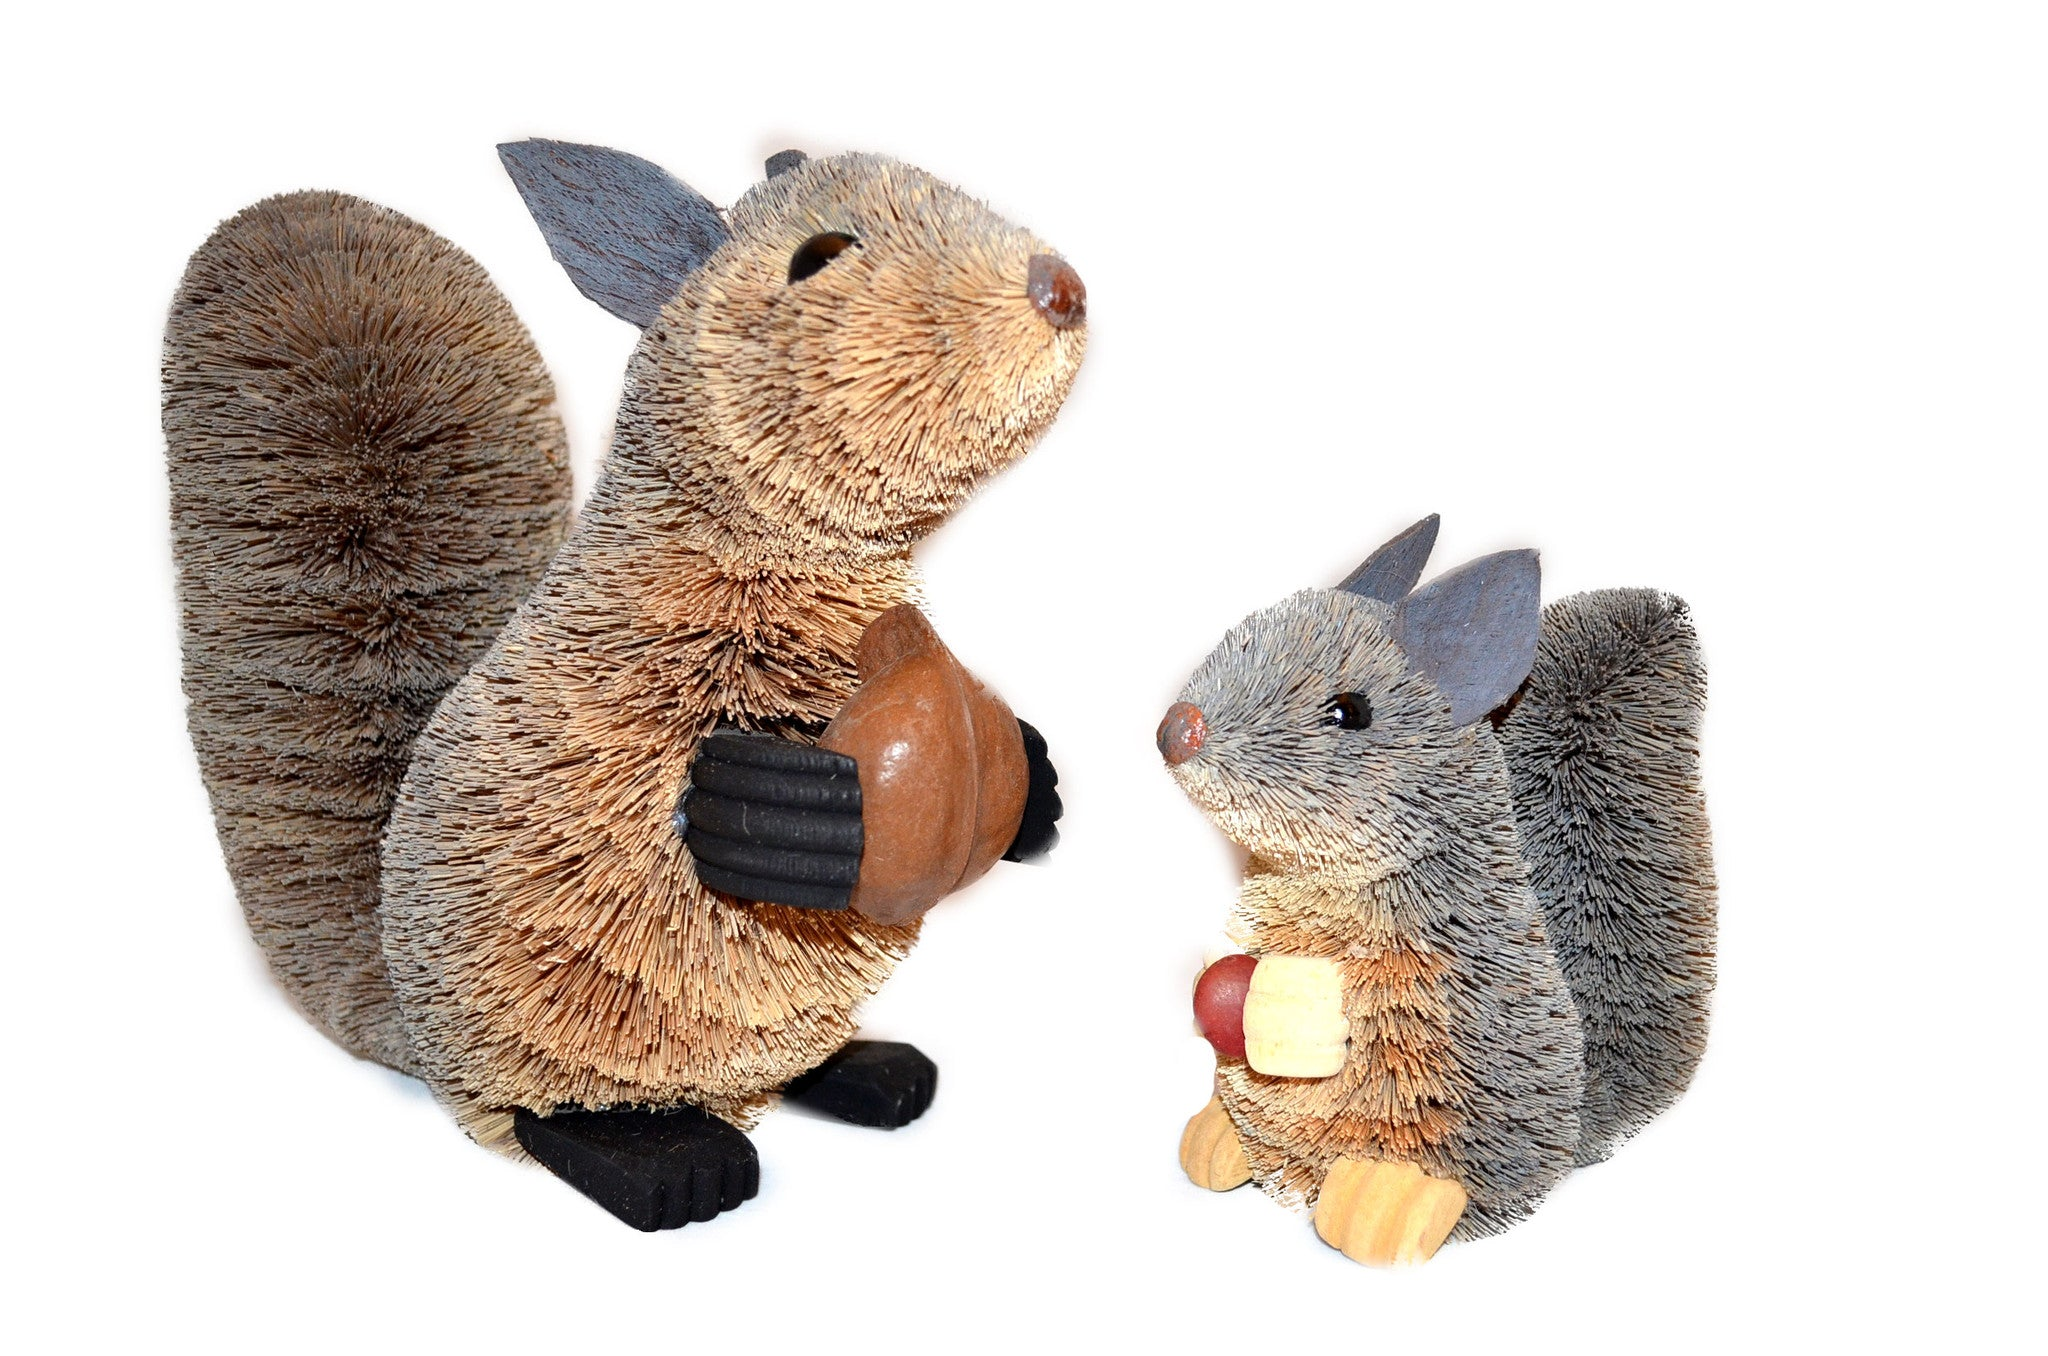 Brushkin Squirrel Statues - Squirrels and More